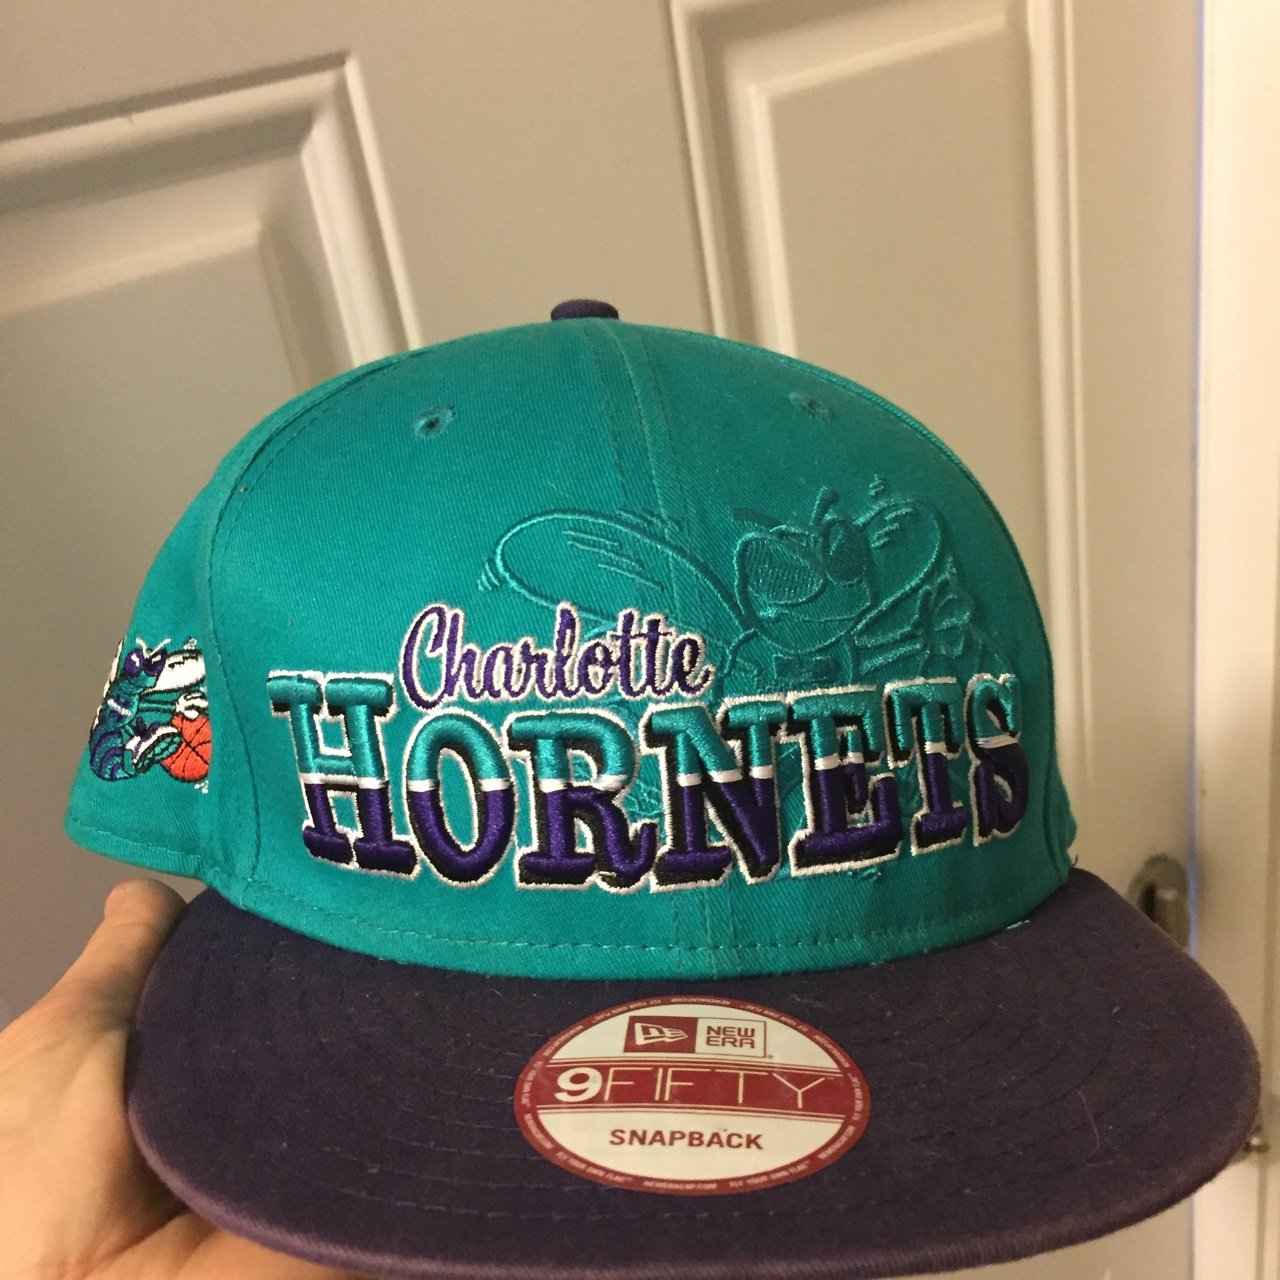 Charlotte Hornets SnapBack Hat 🏀 Made by New Era 9 Fifty - Depop 64f305e44cf